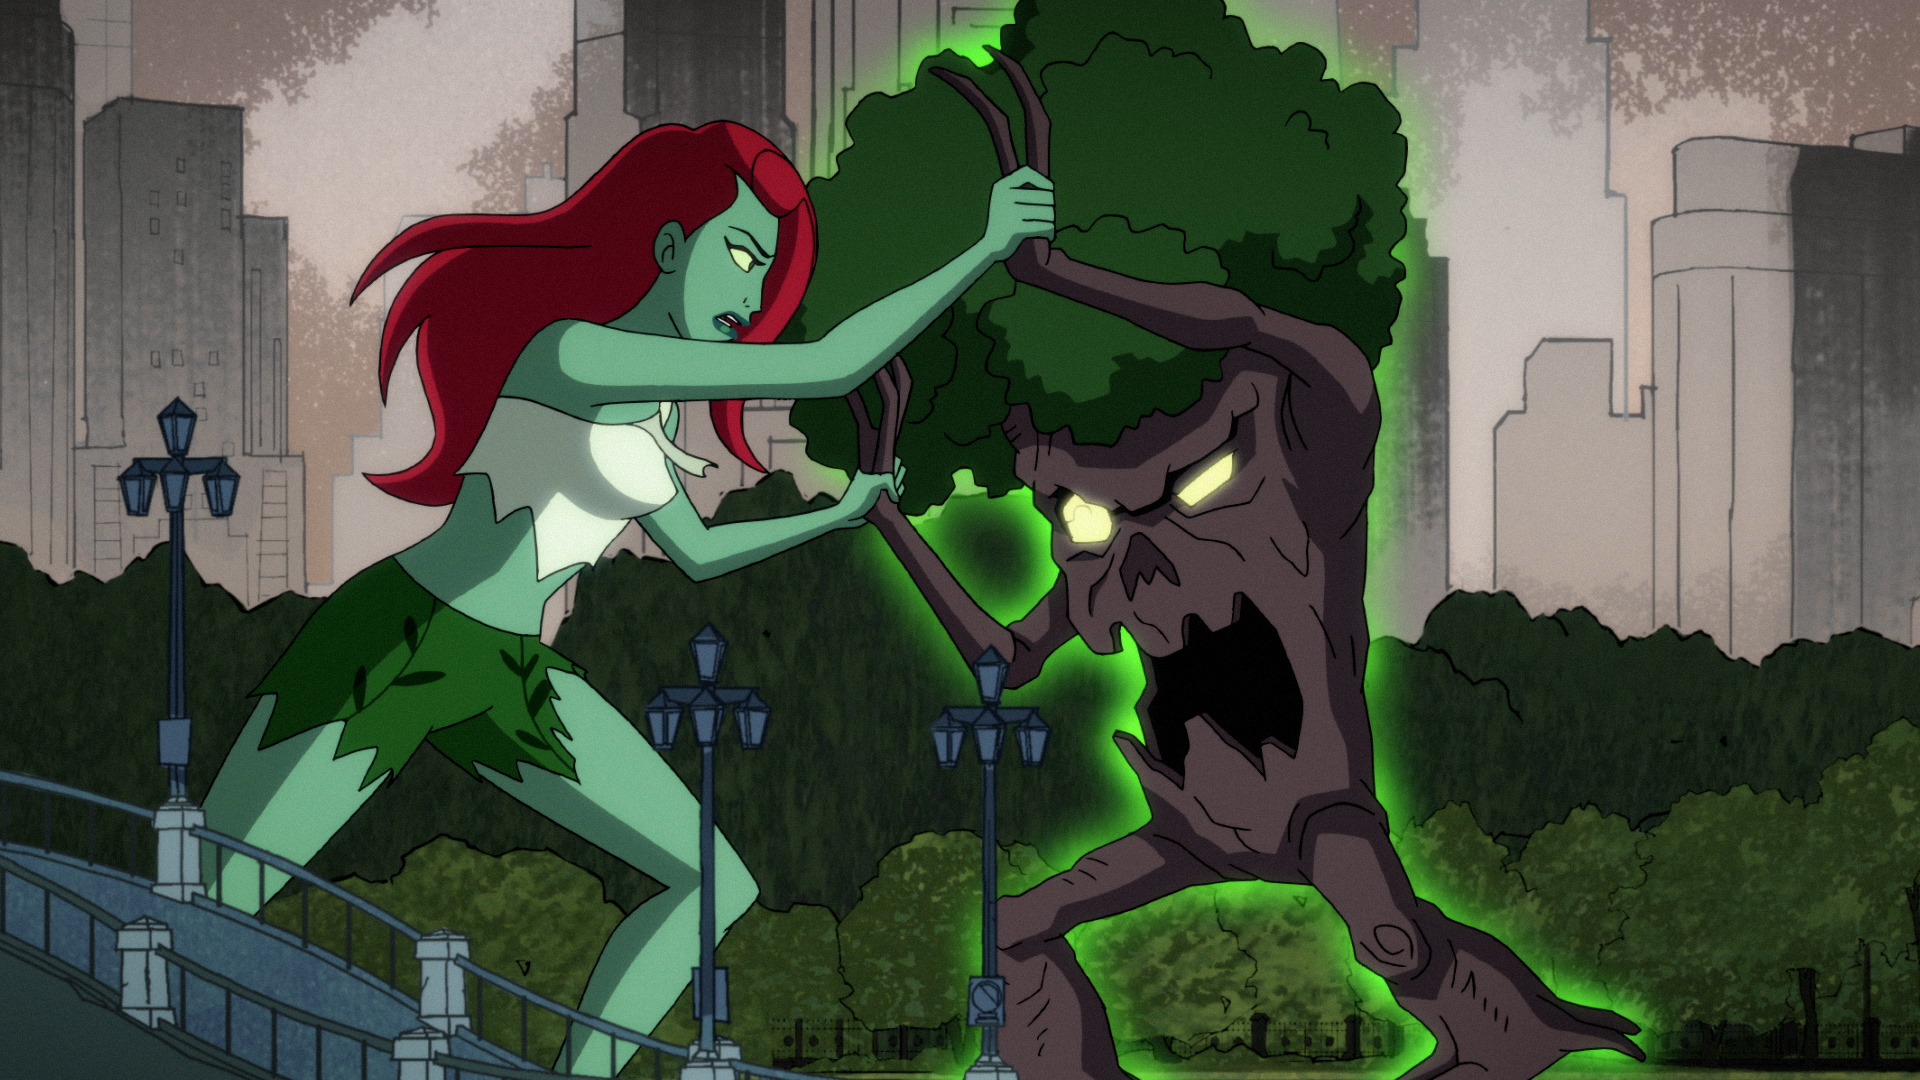 Poison Ivy (voiced by Lake Bell) fights off an infected tree in 'Harley Quinn' Season 1.